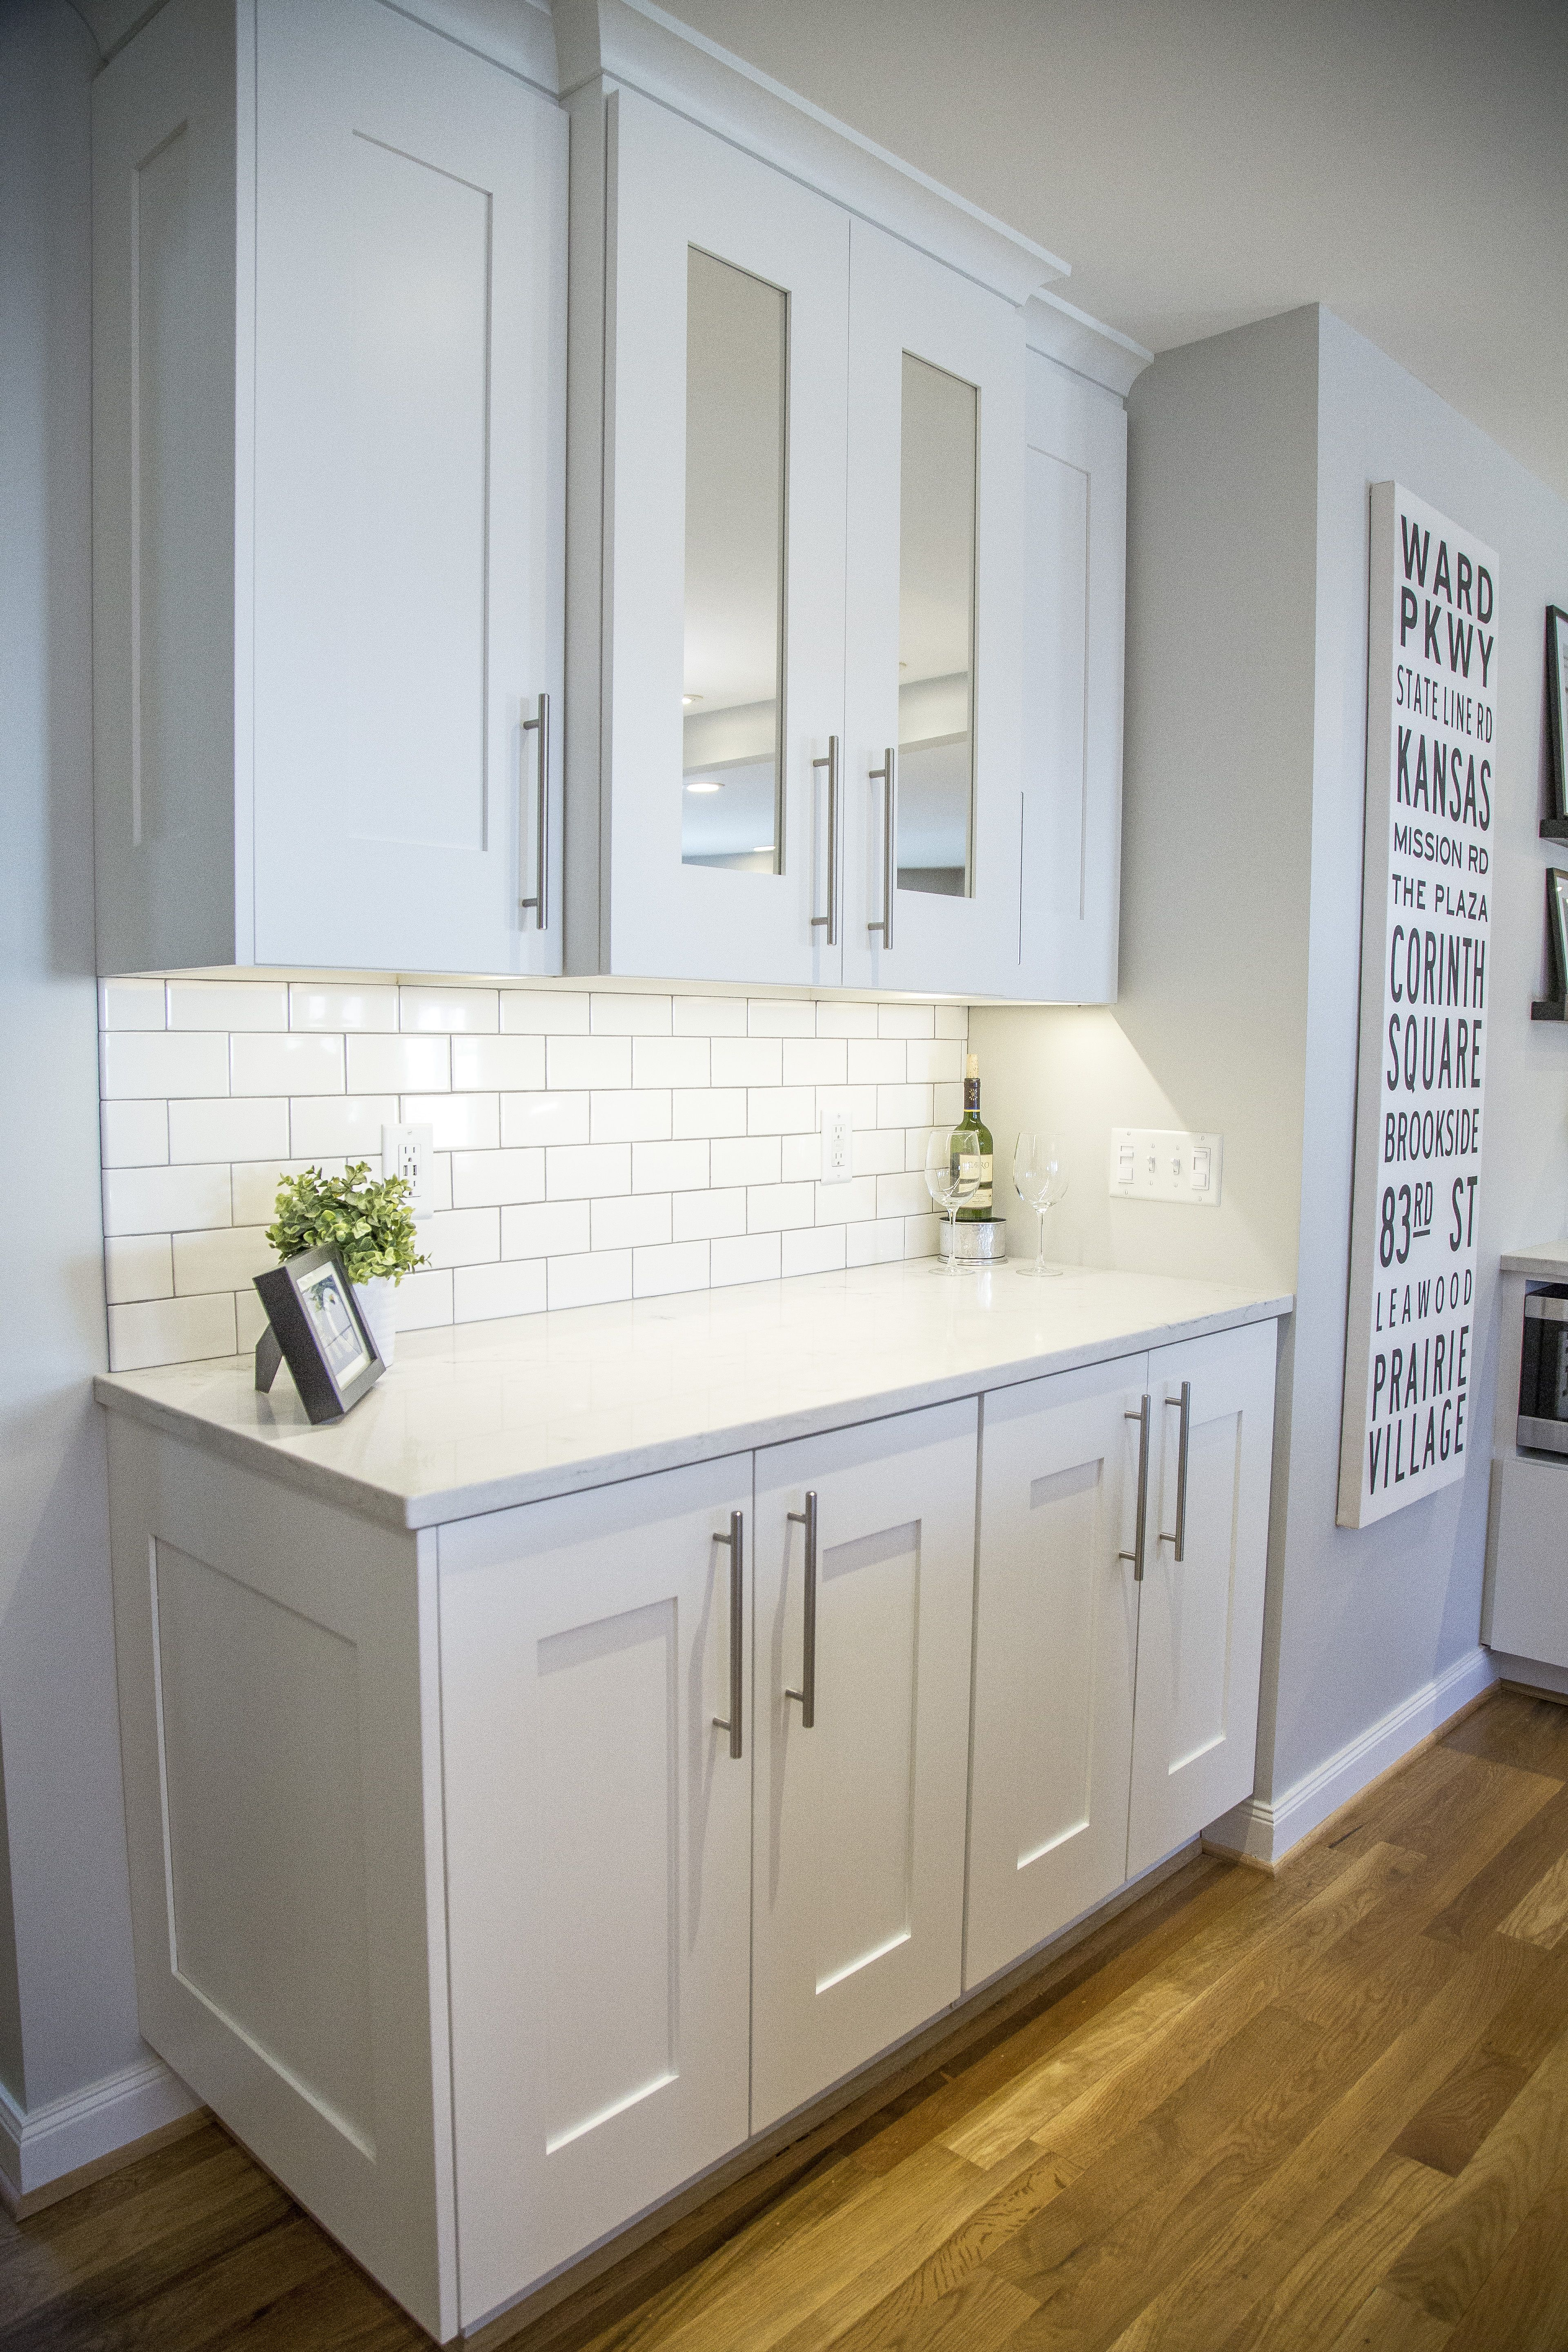 Kitchen Tiles London zodiac london sky quartz countertops, brite white subway tile